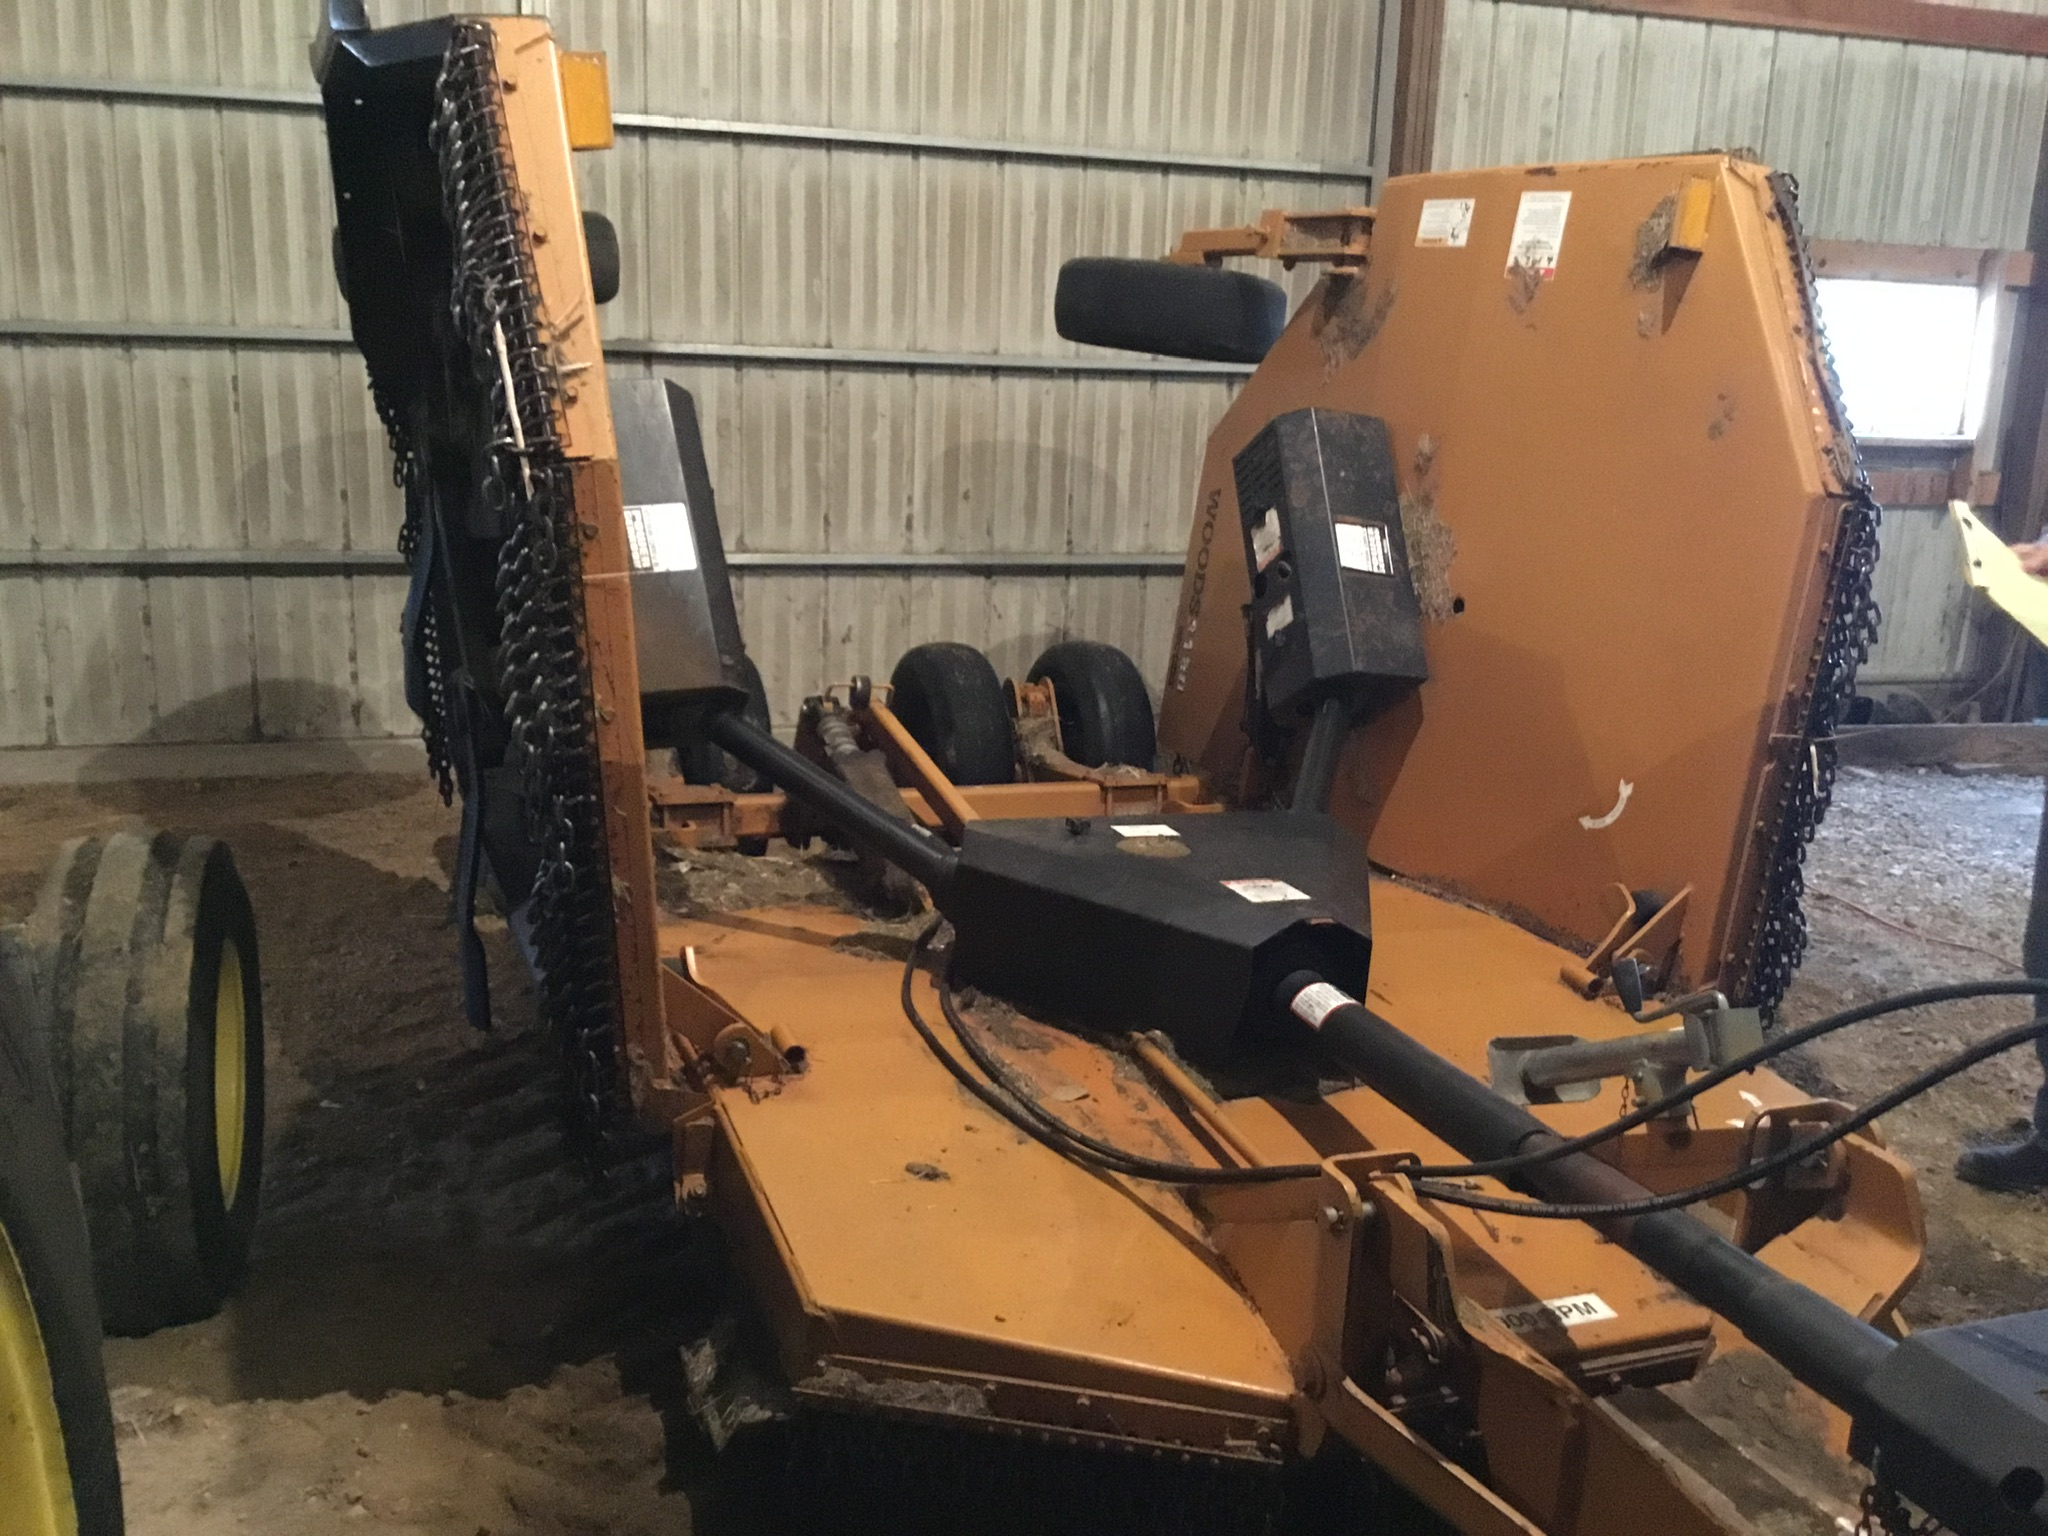 Woods 9309 Bat Wing Mower, 15Ft., 1,000 PTO, Chains, 6 Aircraft Tires, Serial #745029 - Image 6 of 9